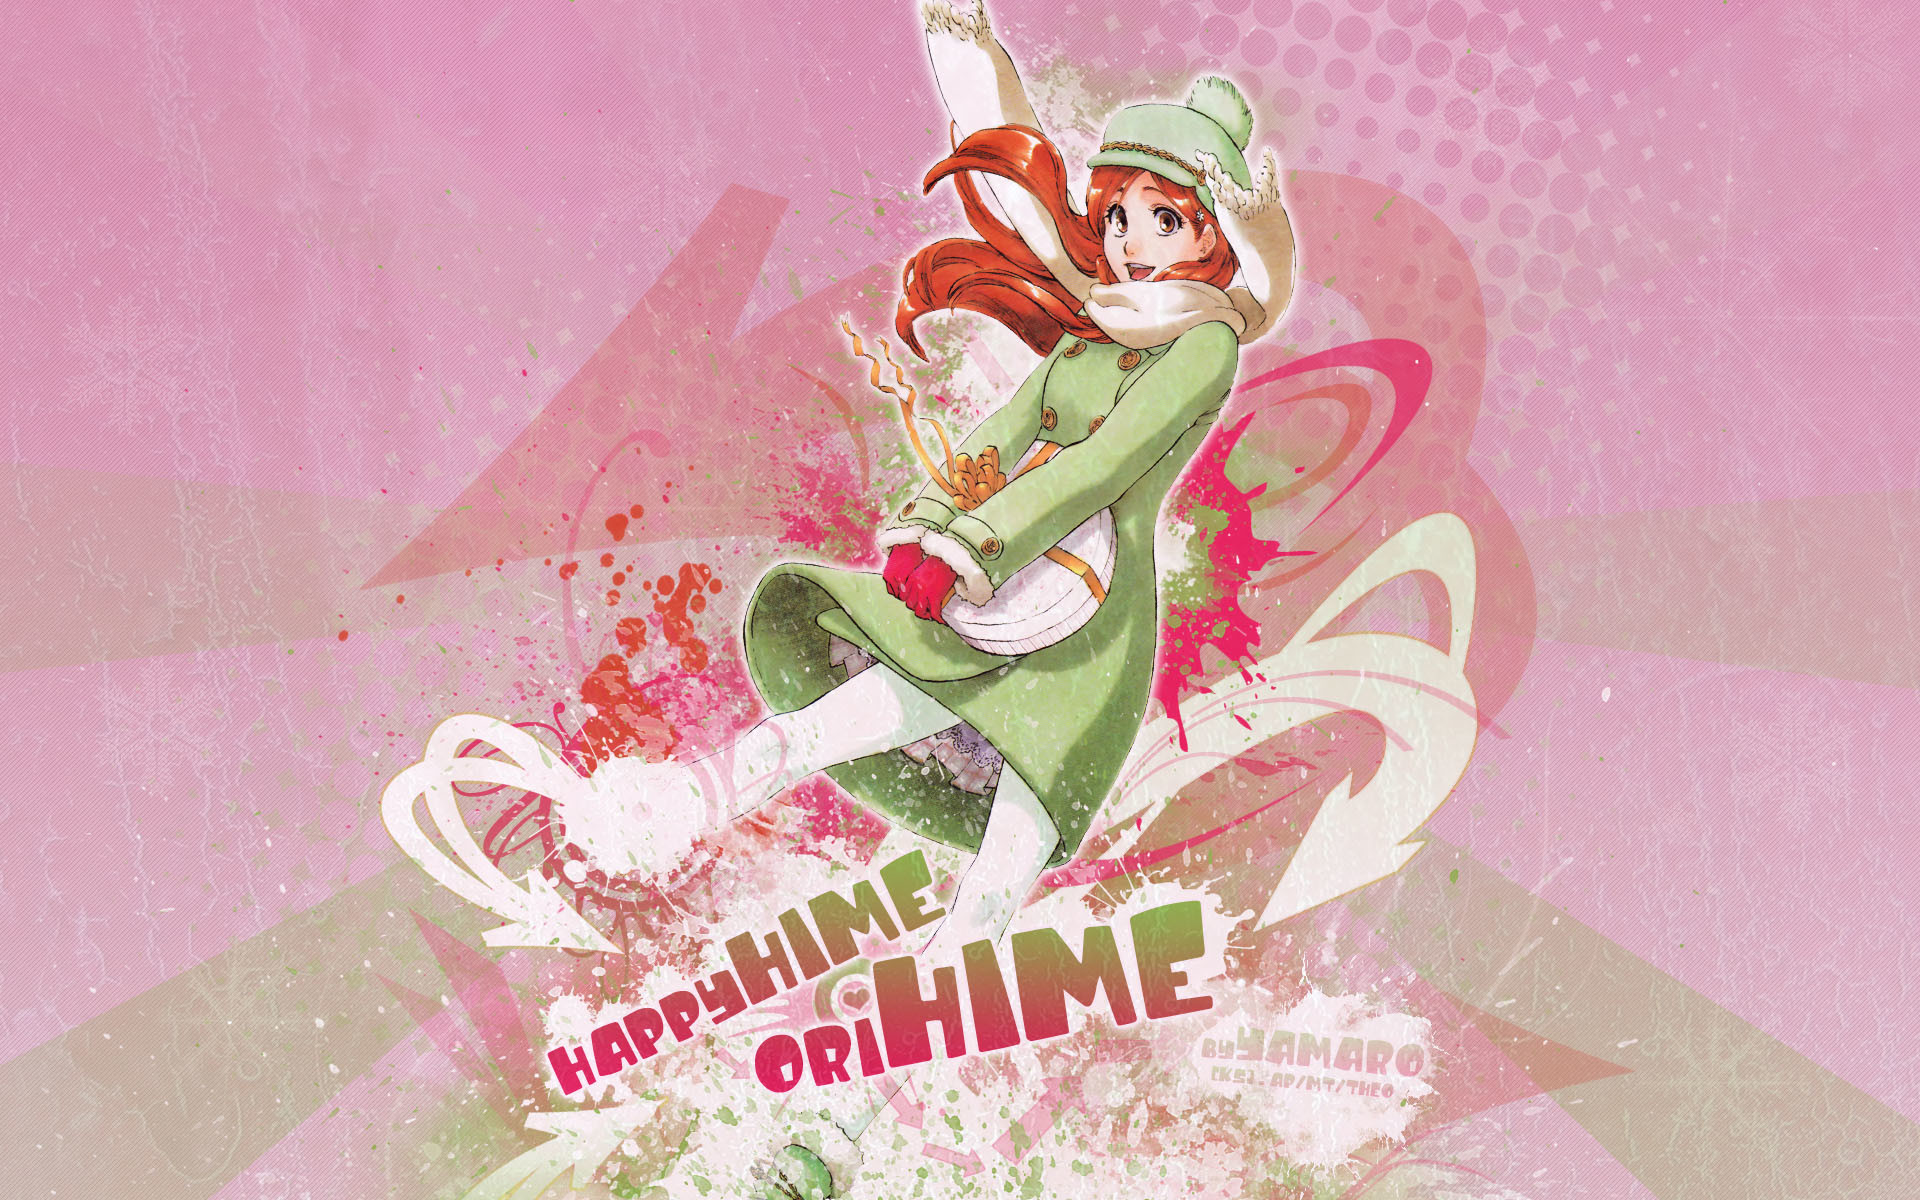 Res: 1920x1200, Bleach Forever images Orihime Inoue HD wallpaper and background photos